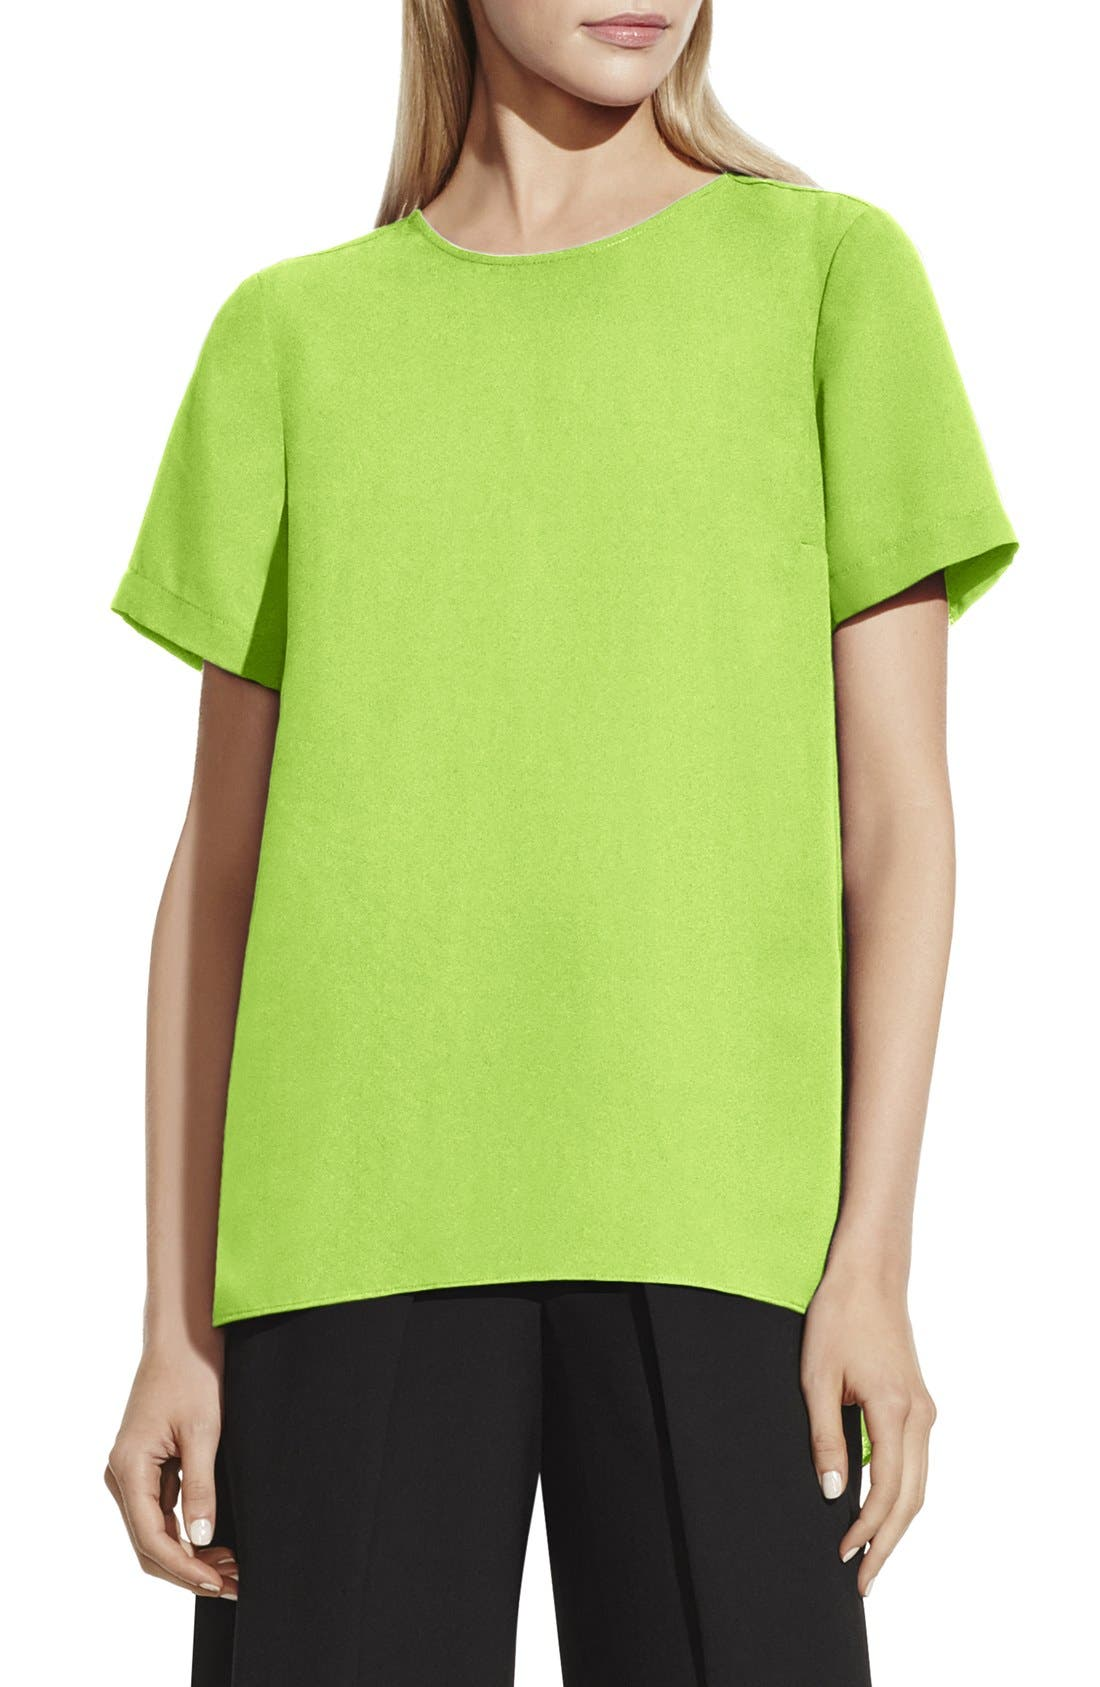 VINCE CAMUTO,                             Short Sleeve High/Low Hem Blouse,                             Main thumbnail 1, color,                             304